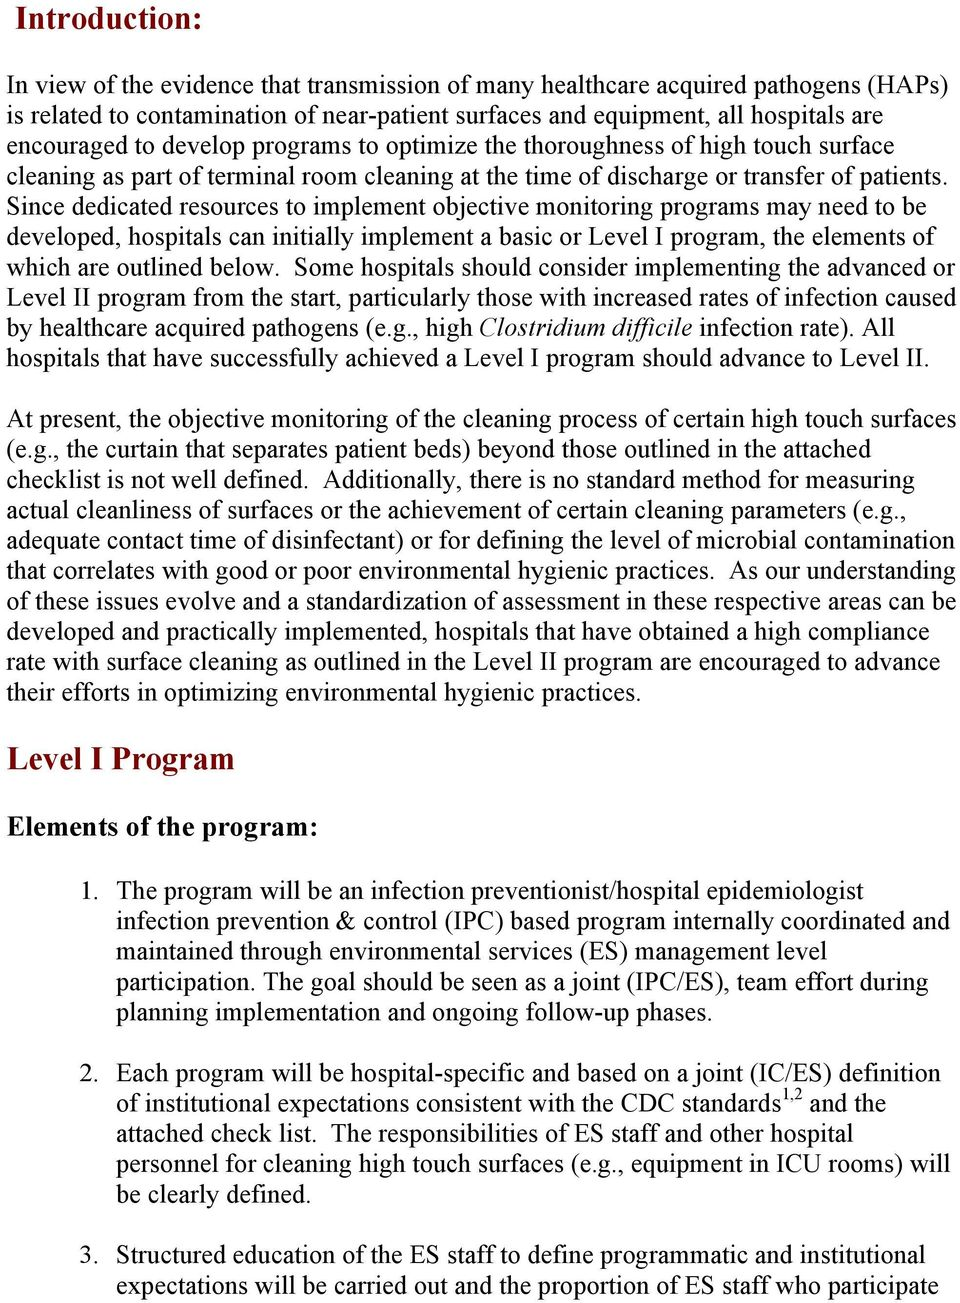 Since dedicated resources to implement objective monitoring programs may need to be developed, hospitals can initially implement a basic or Level I program, the elements of which are outlined below.